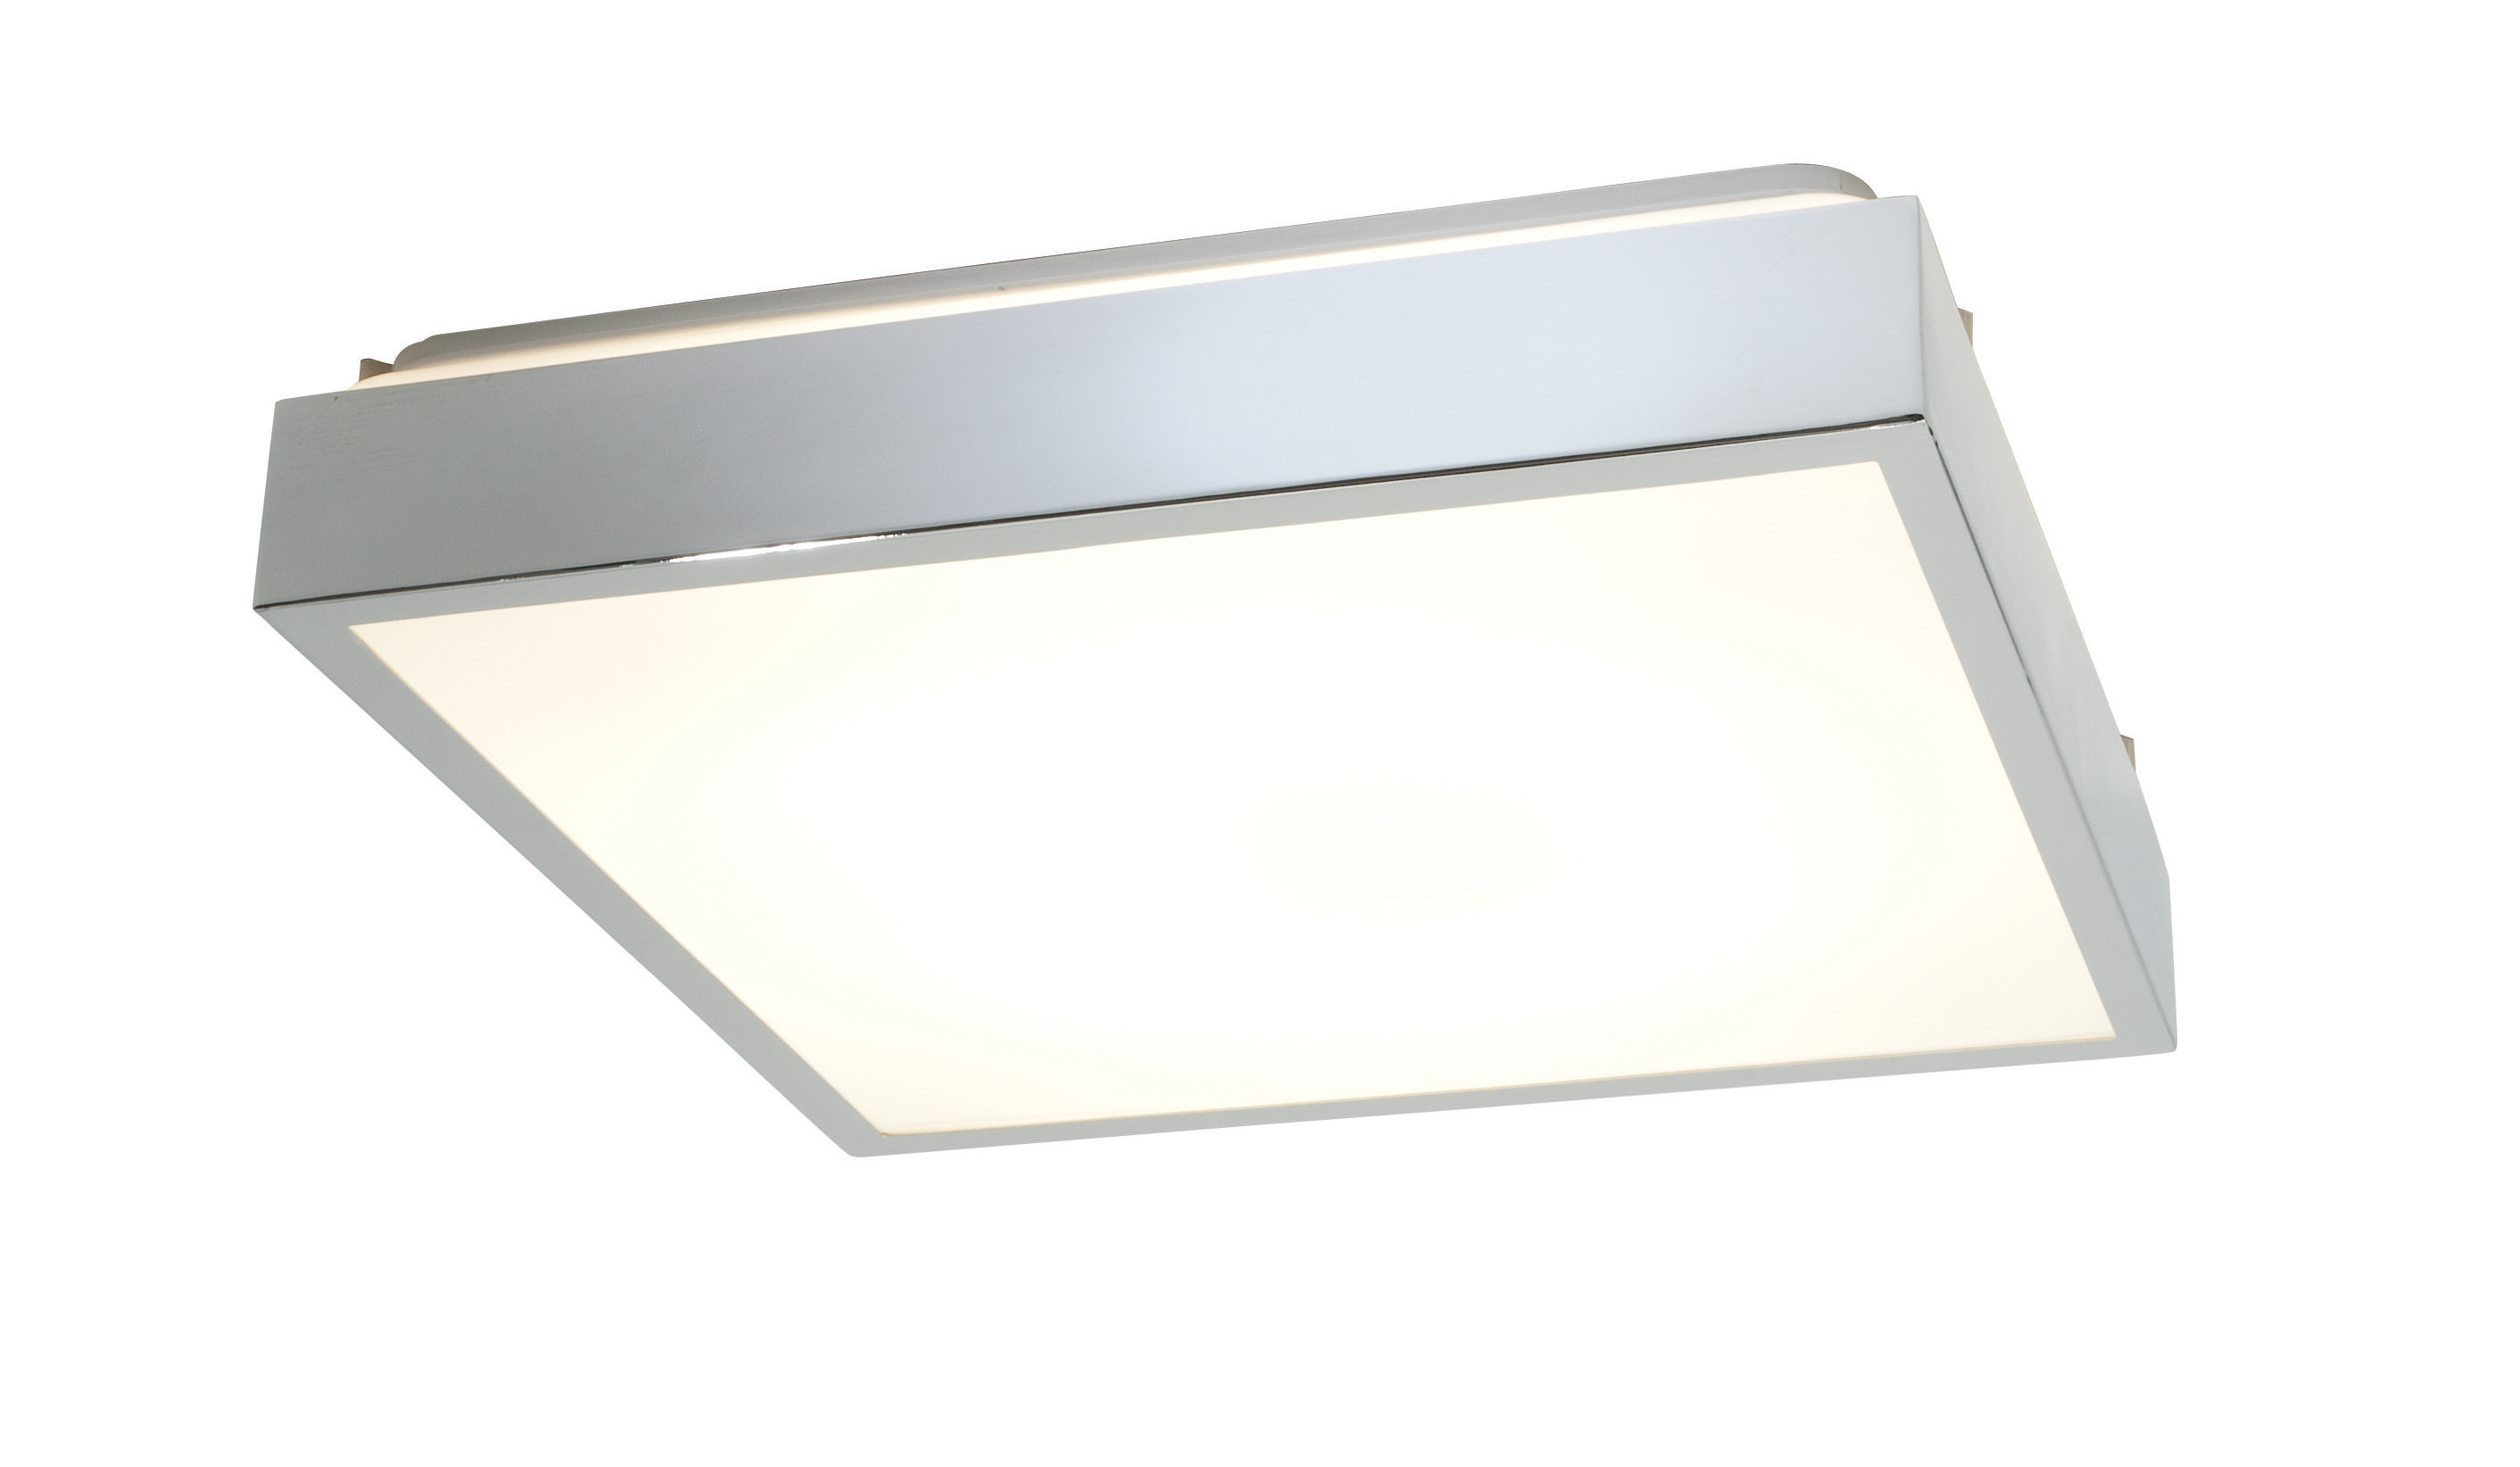 cubita large 35215 square bathroom ceiling light 38w 2d 4 pin chrome